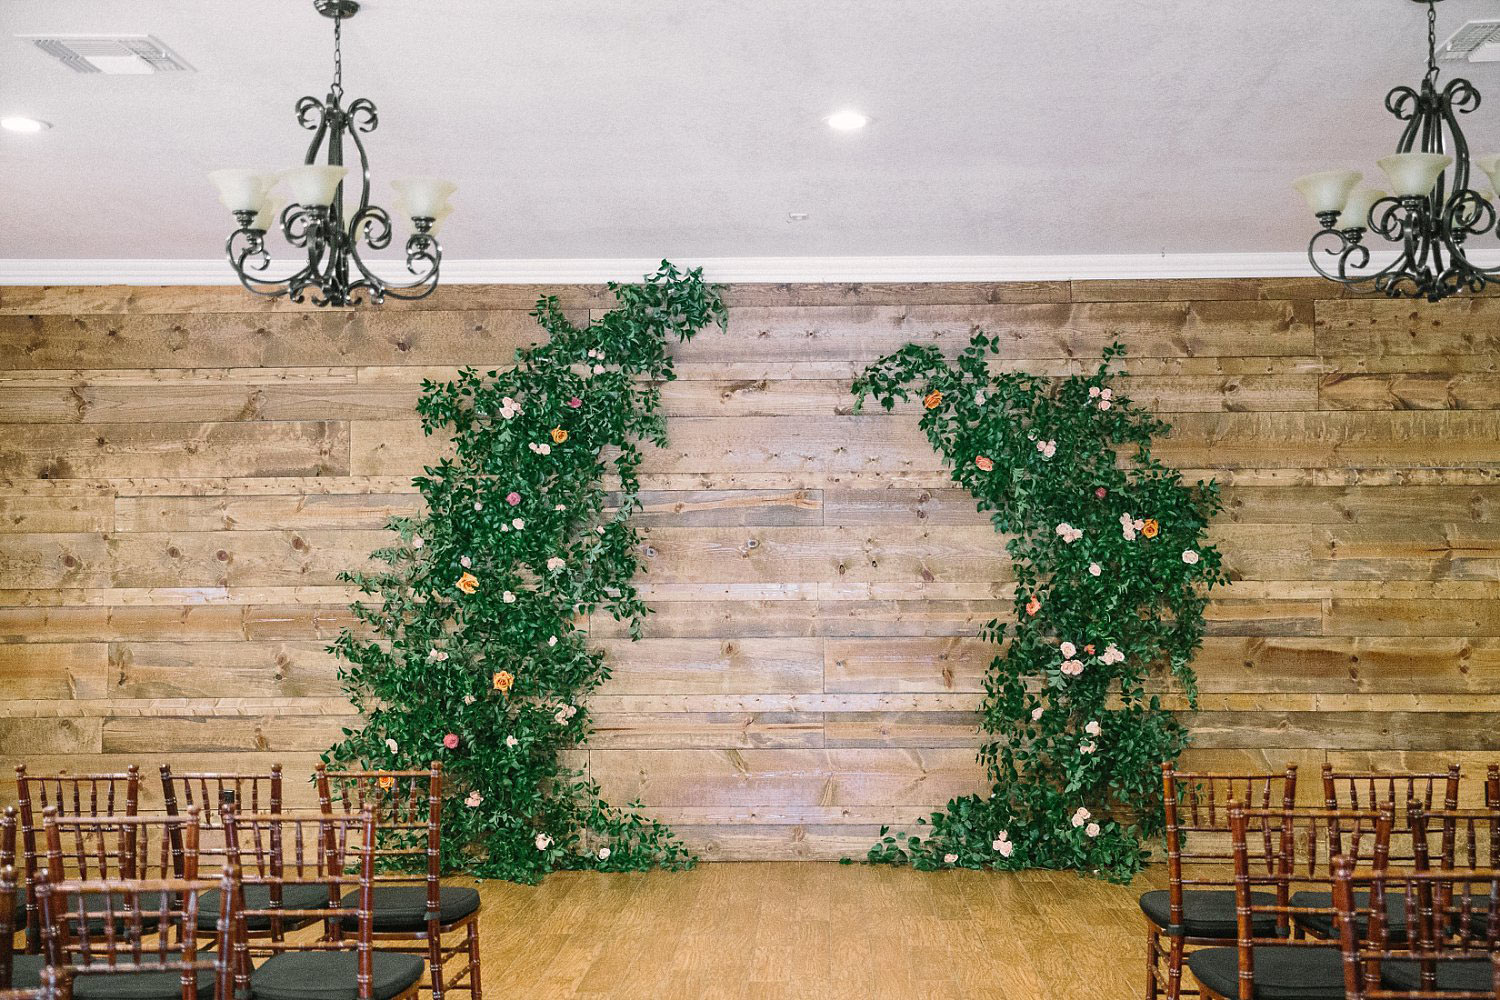 Indoor wedding ceremony at the Orchard in Azle TX